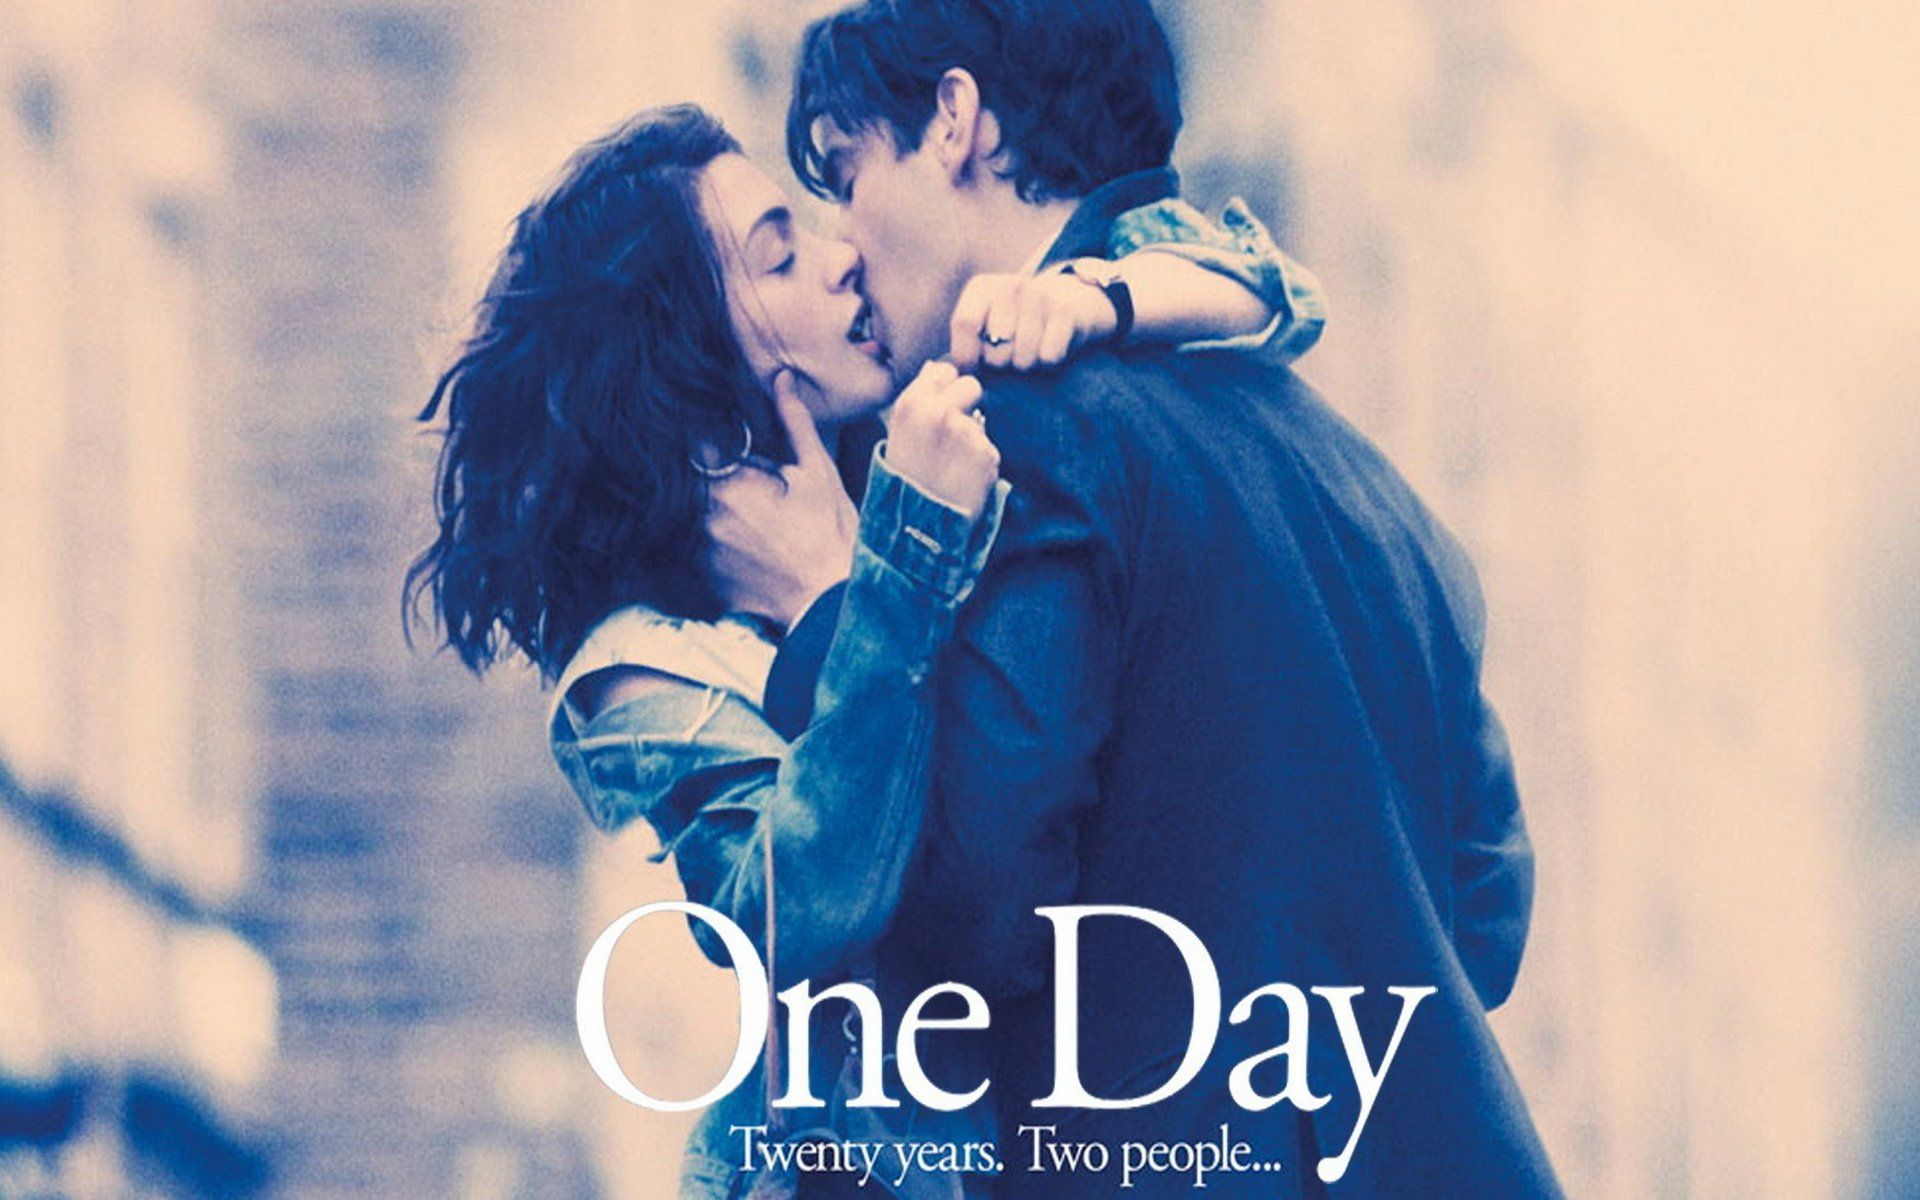 one day movie wallpaper Wallpapers Free one day movie wallpaper